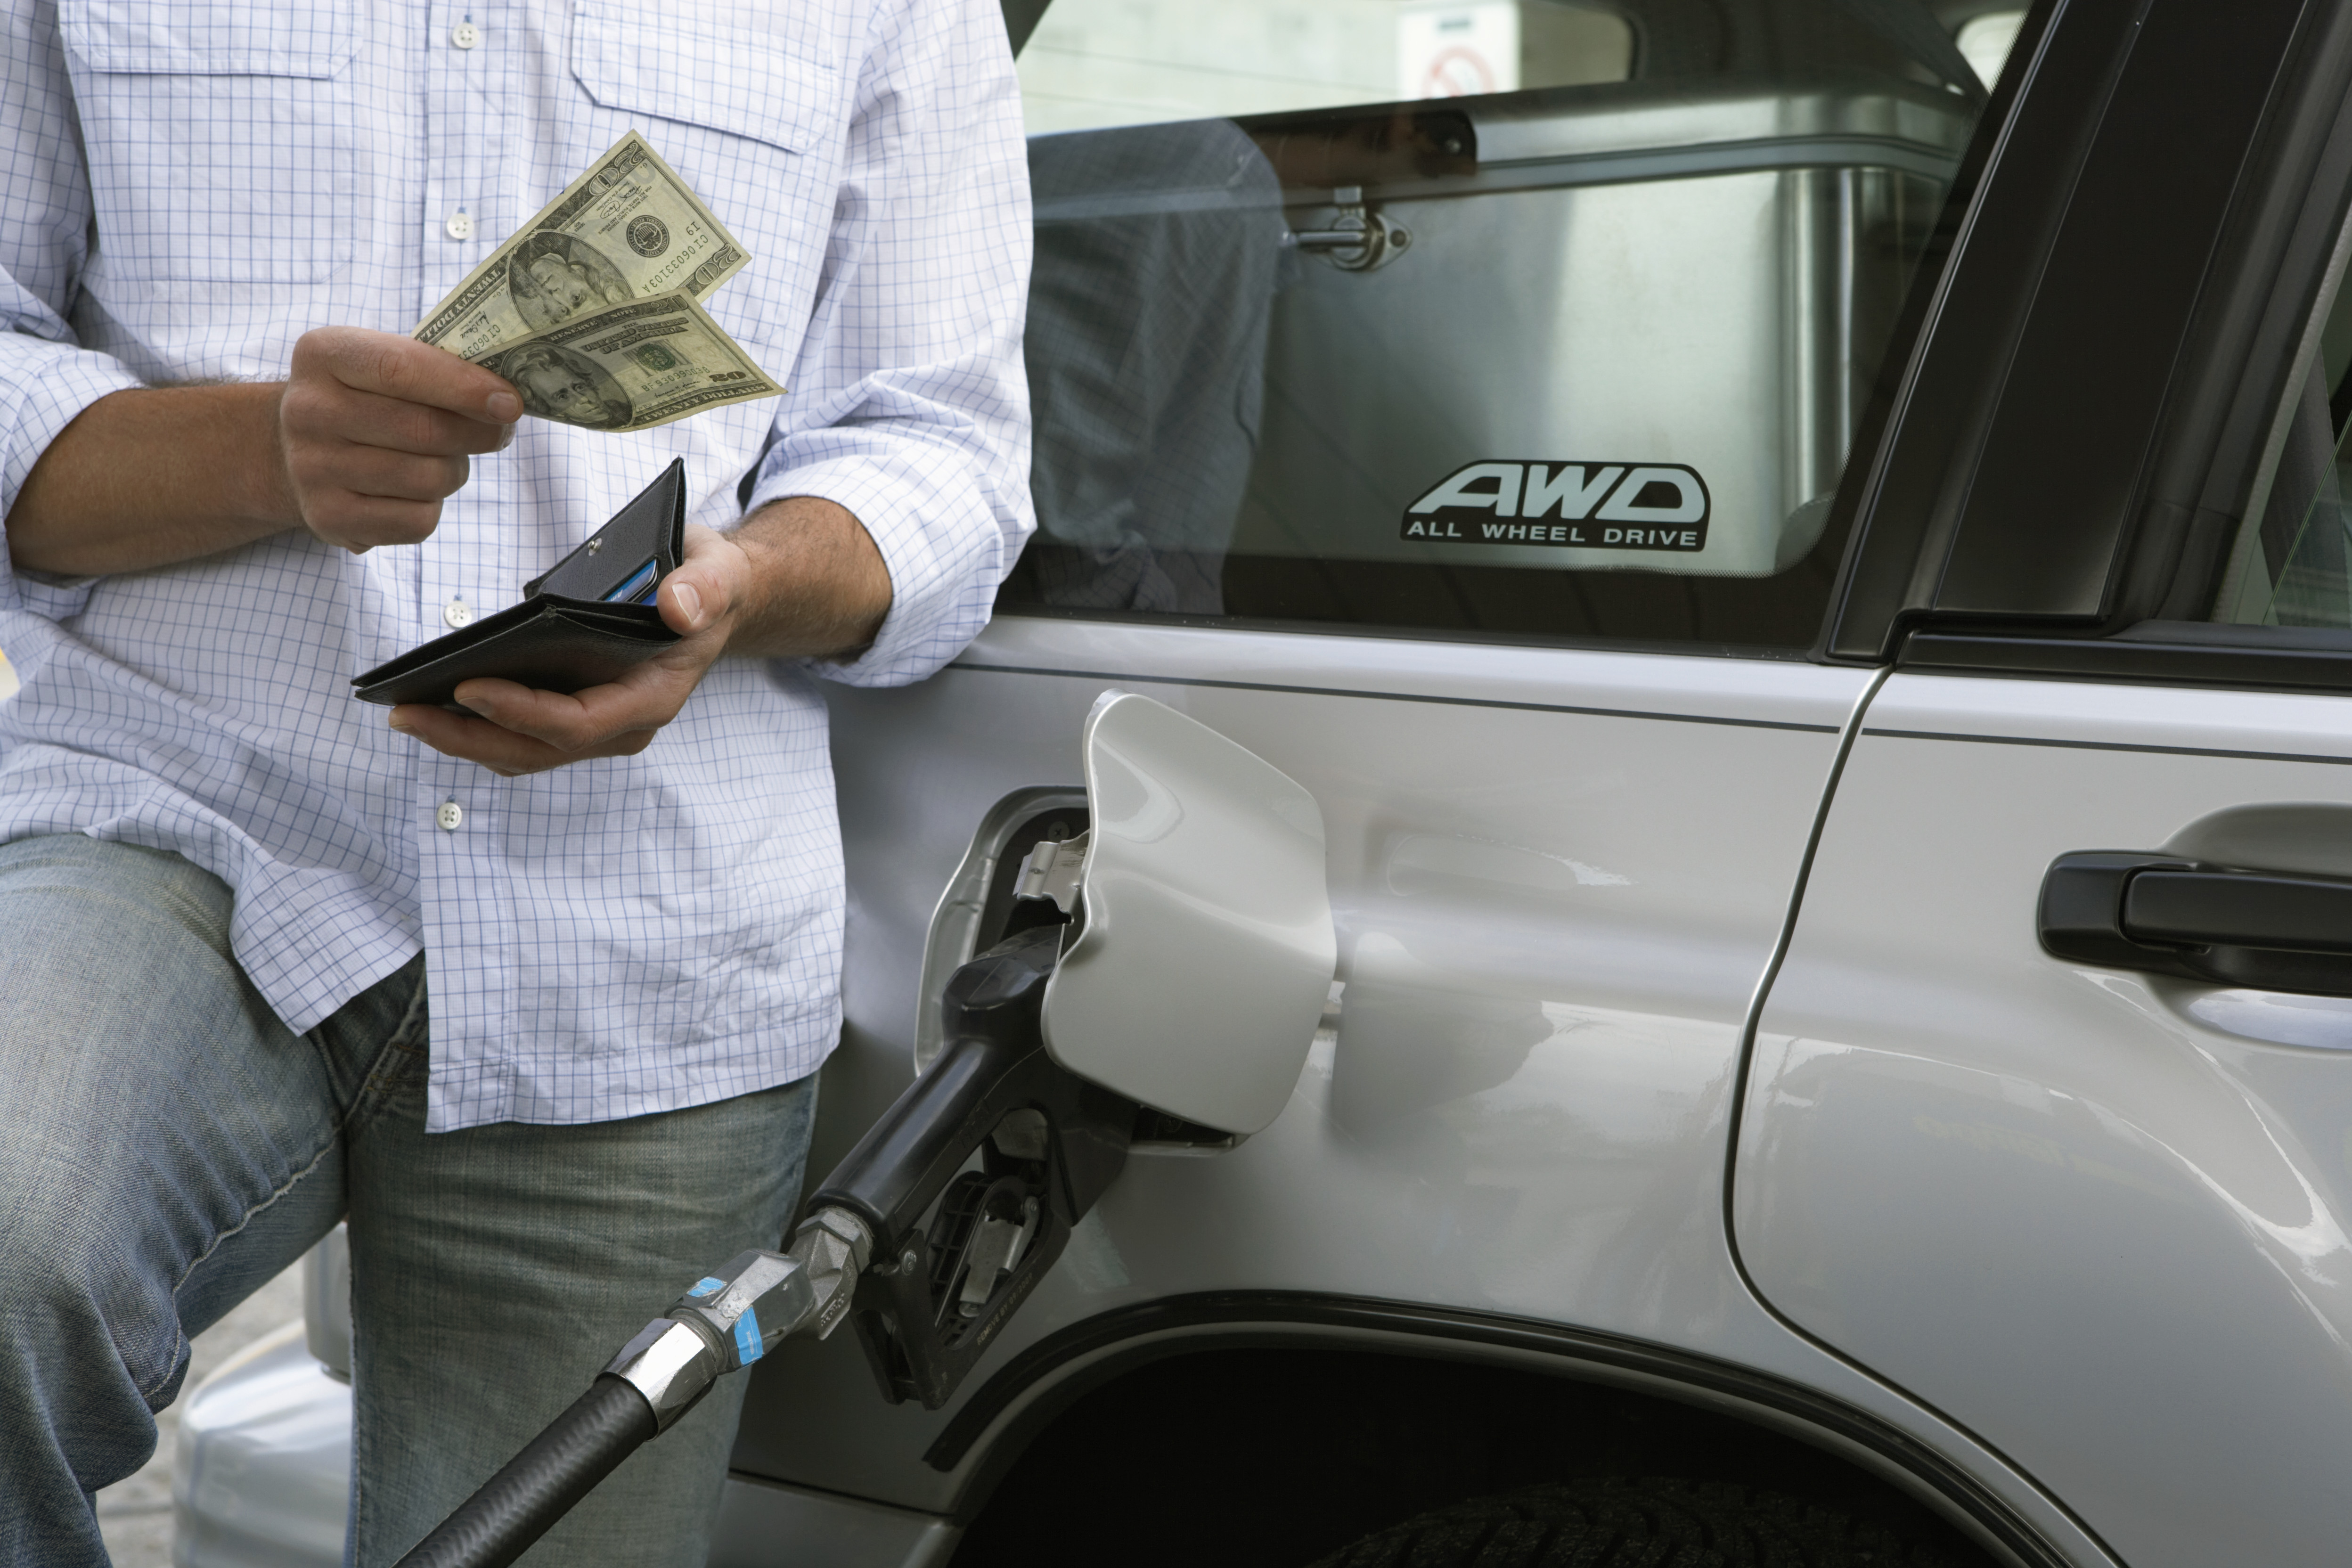 Cheap gas prices can actually make us pay more.